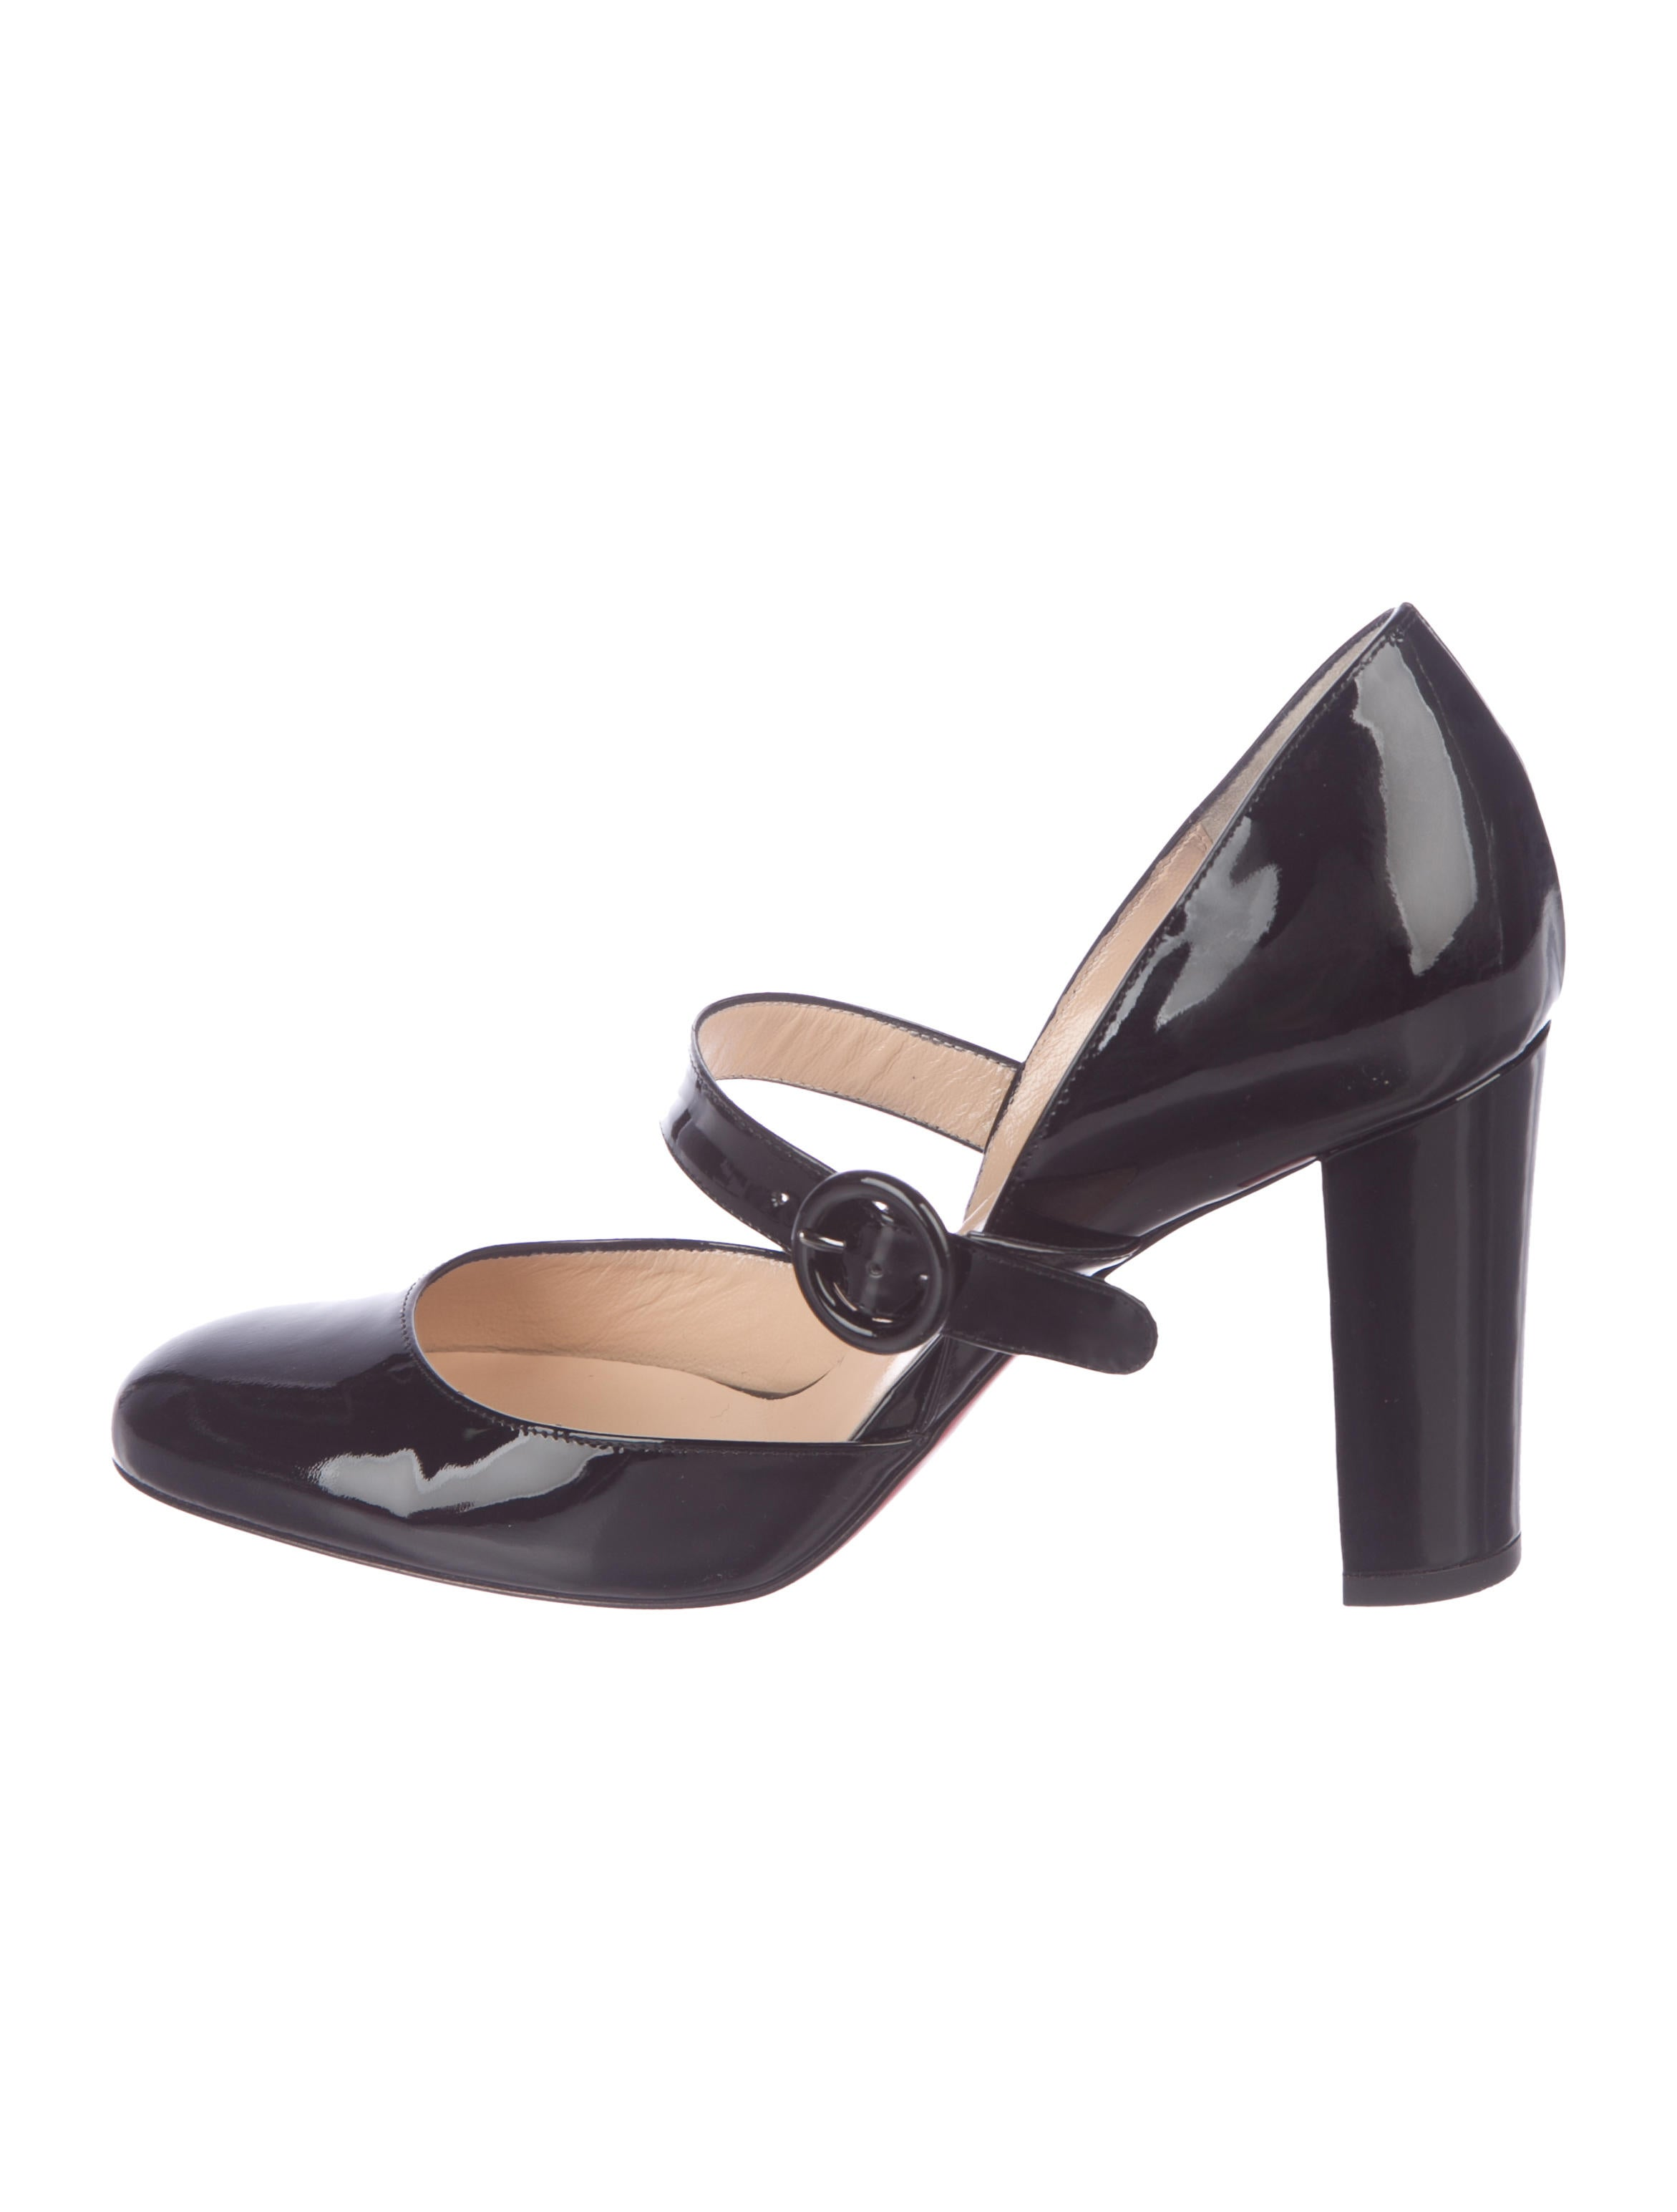 super popular fc6f8 74068 Miss Kawa Mary Jane Pumps